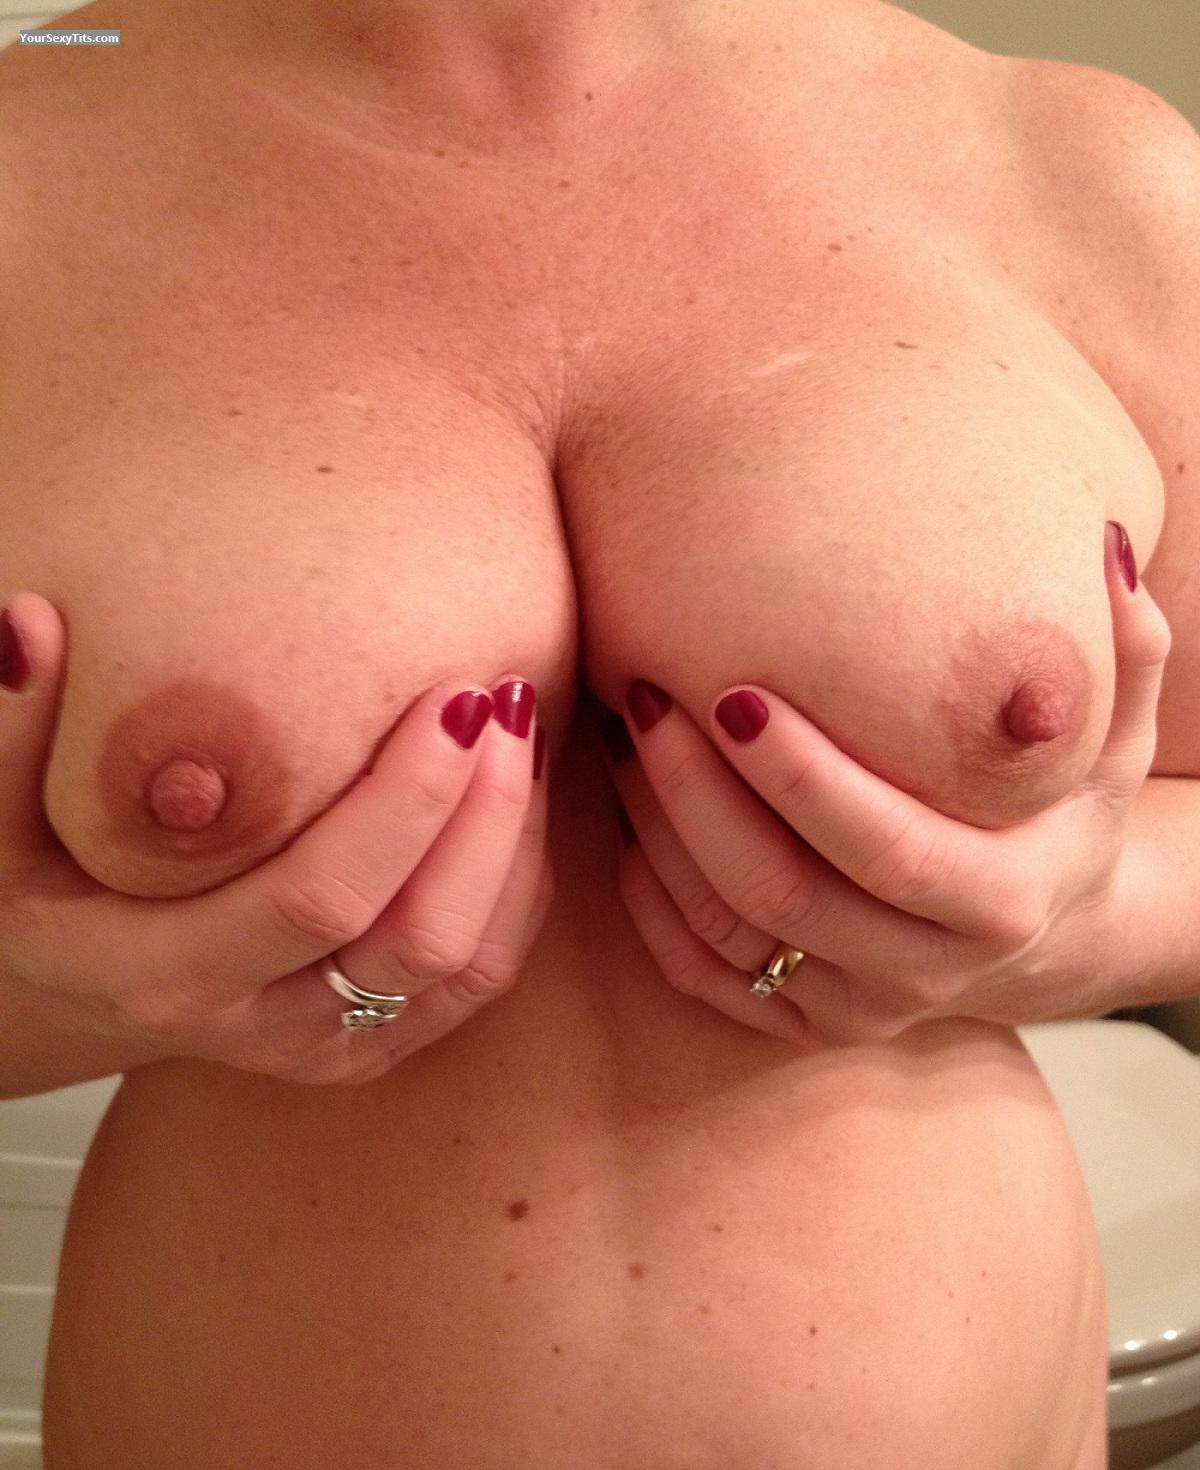 Tit Flash: Wife's Big Tits - Spectacular from Canada